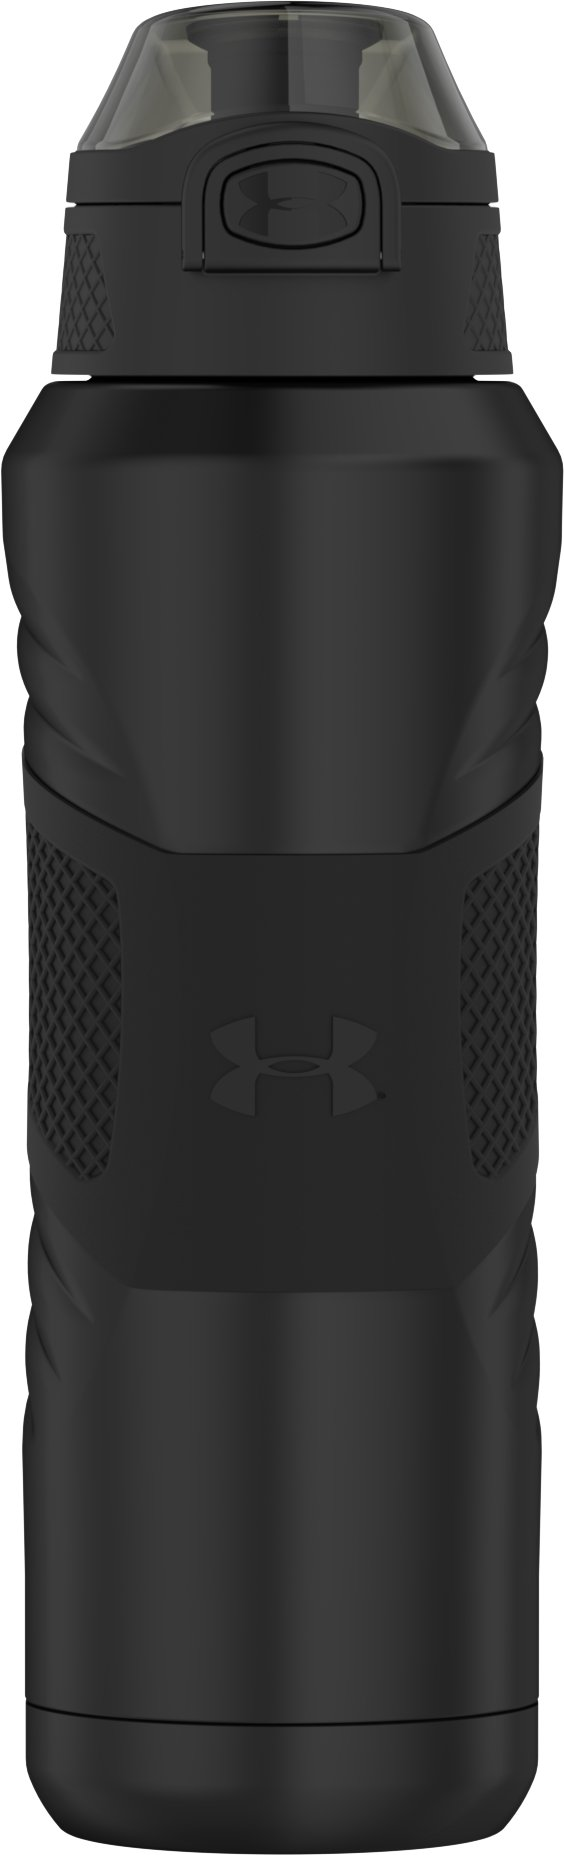 UA Dominate 24 oz. Vacuum-Insulated Water Bottle with Flip Top Lid, Smoke